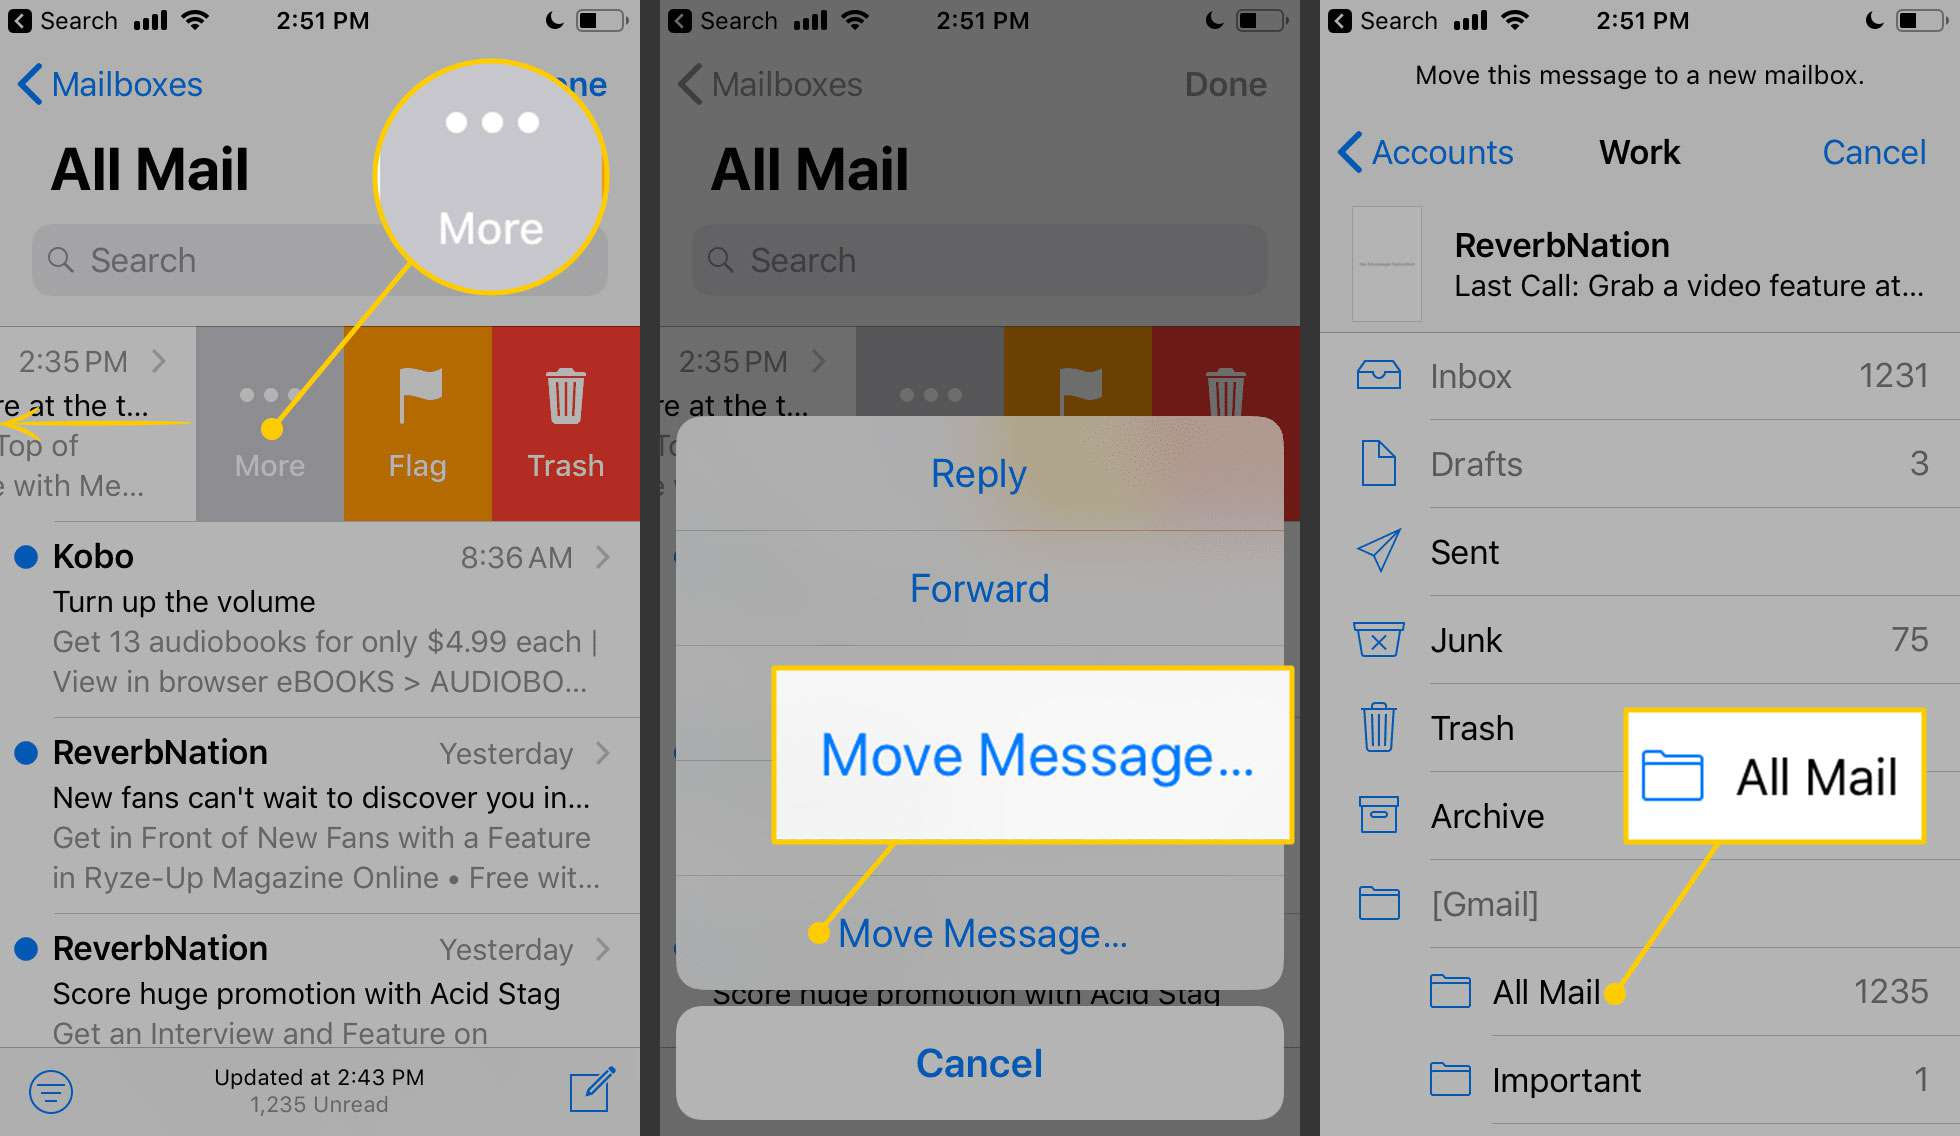 Swipe to move messages on an iPhone